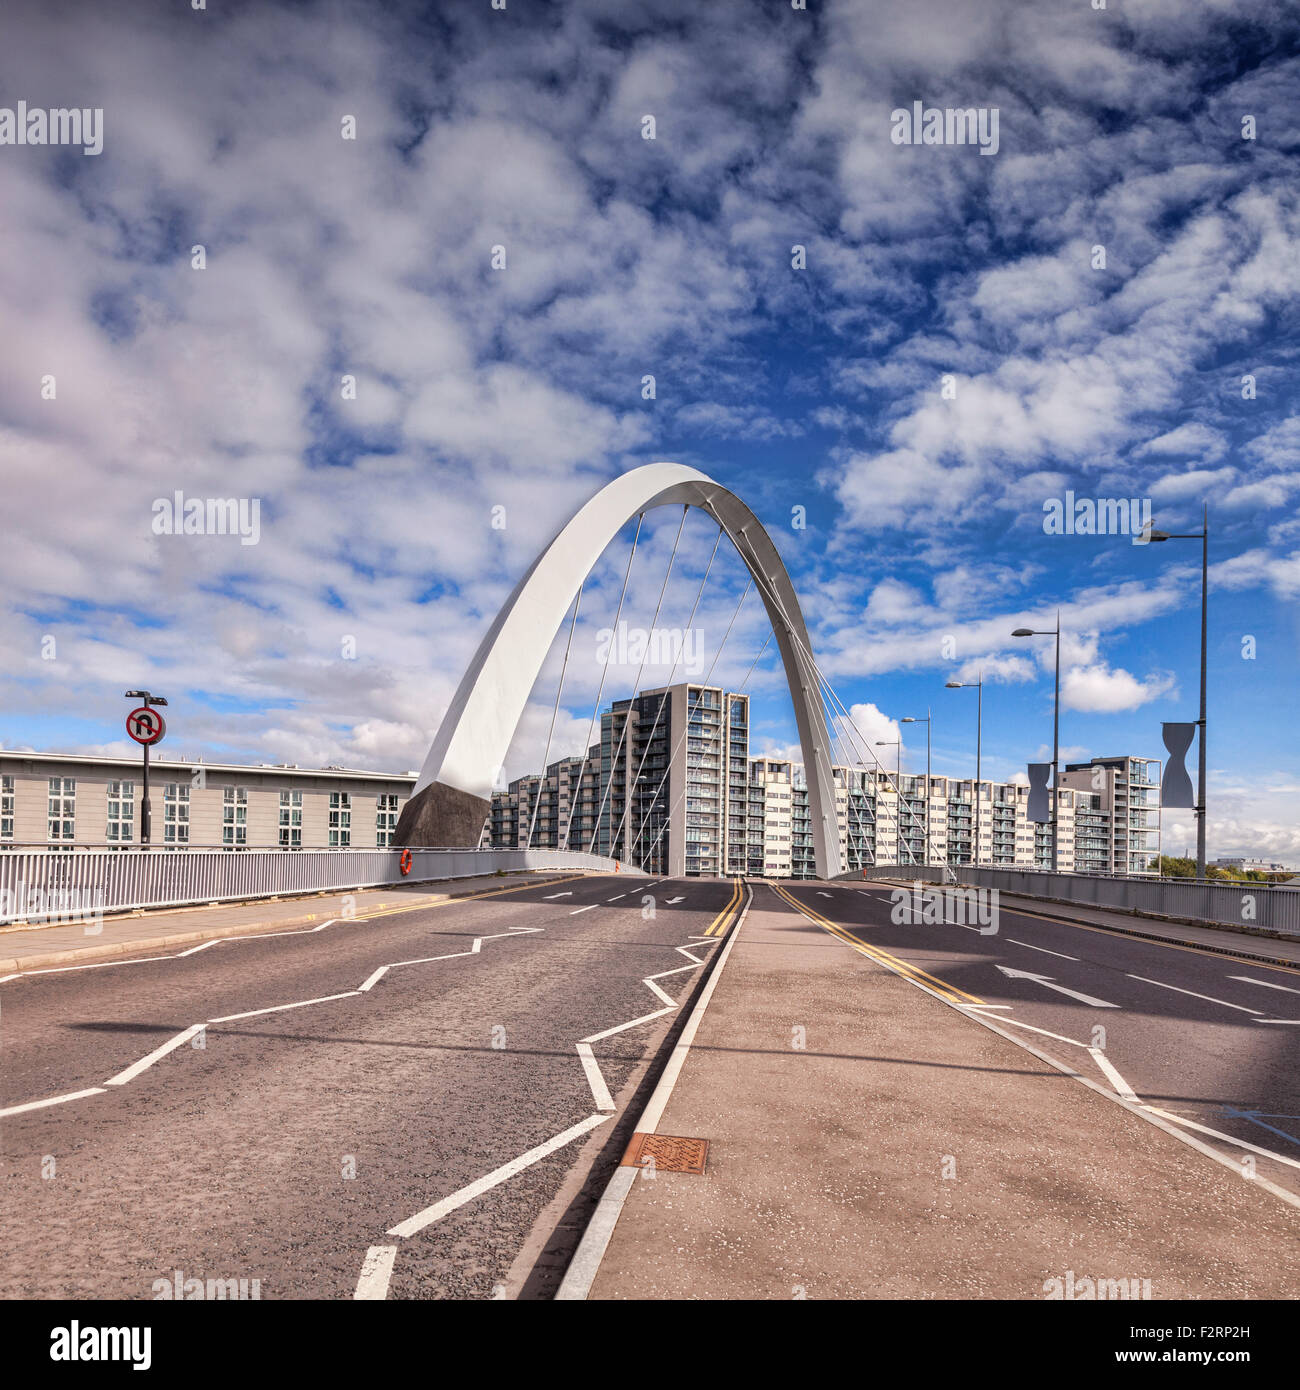 The Clyde Arc, road bridge spanning the River Clyde, Glasgow, Scotland - Stock Image